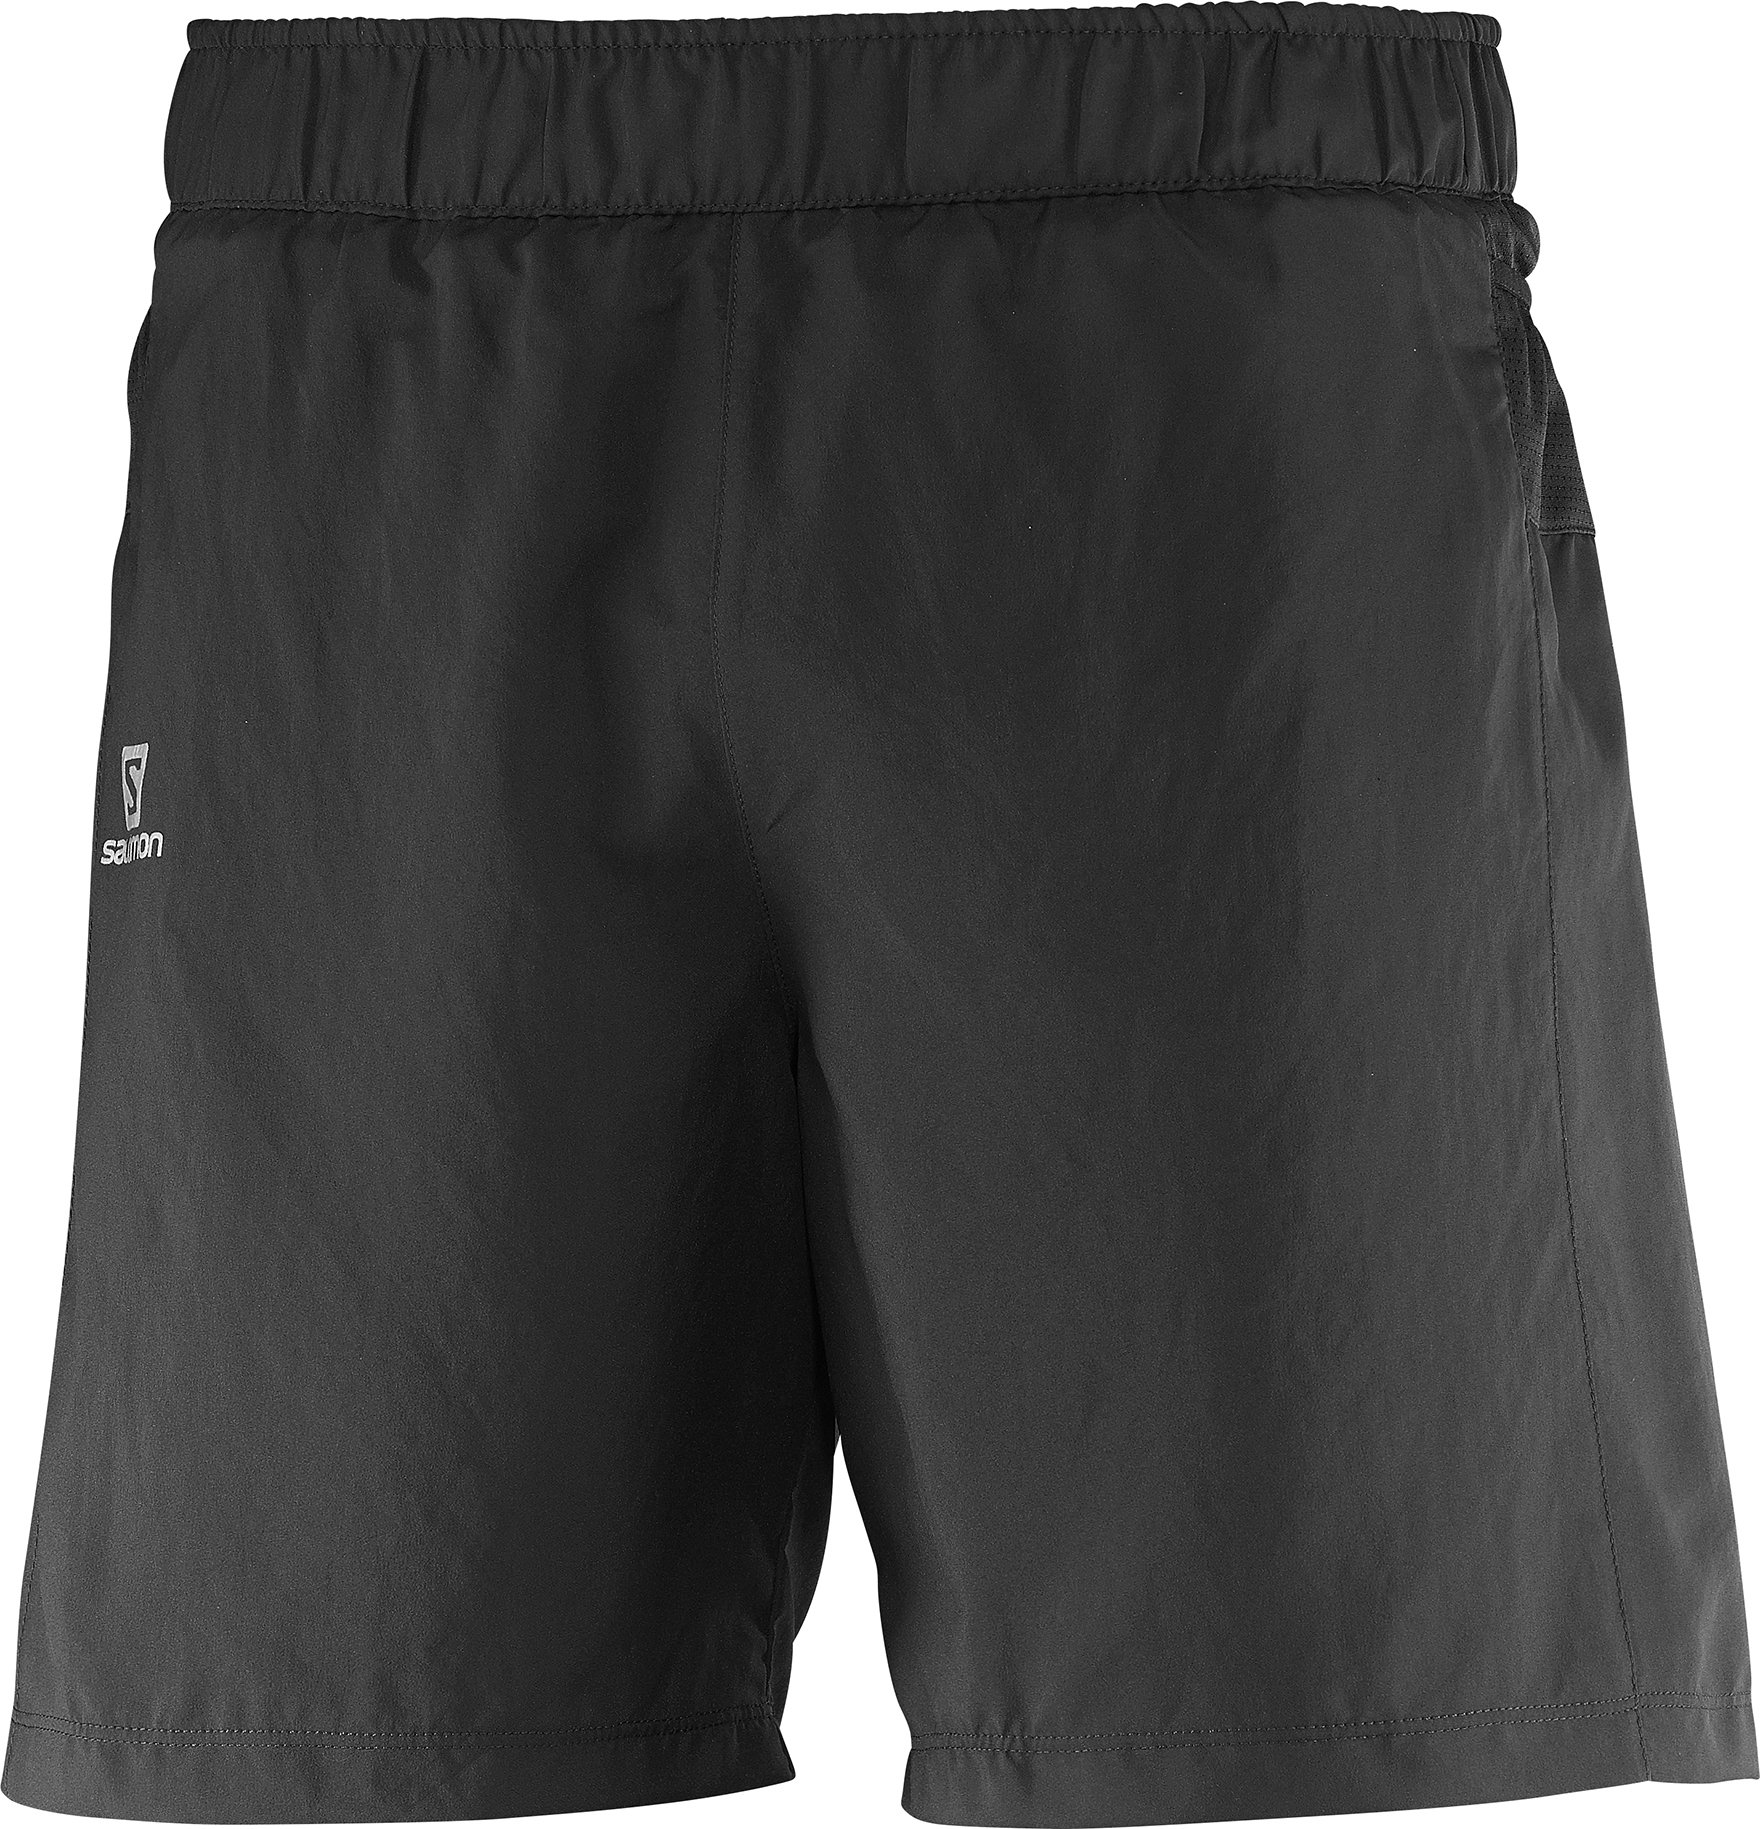 Salomon Trail Runner Short M, Black, XX-Large